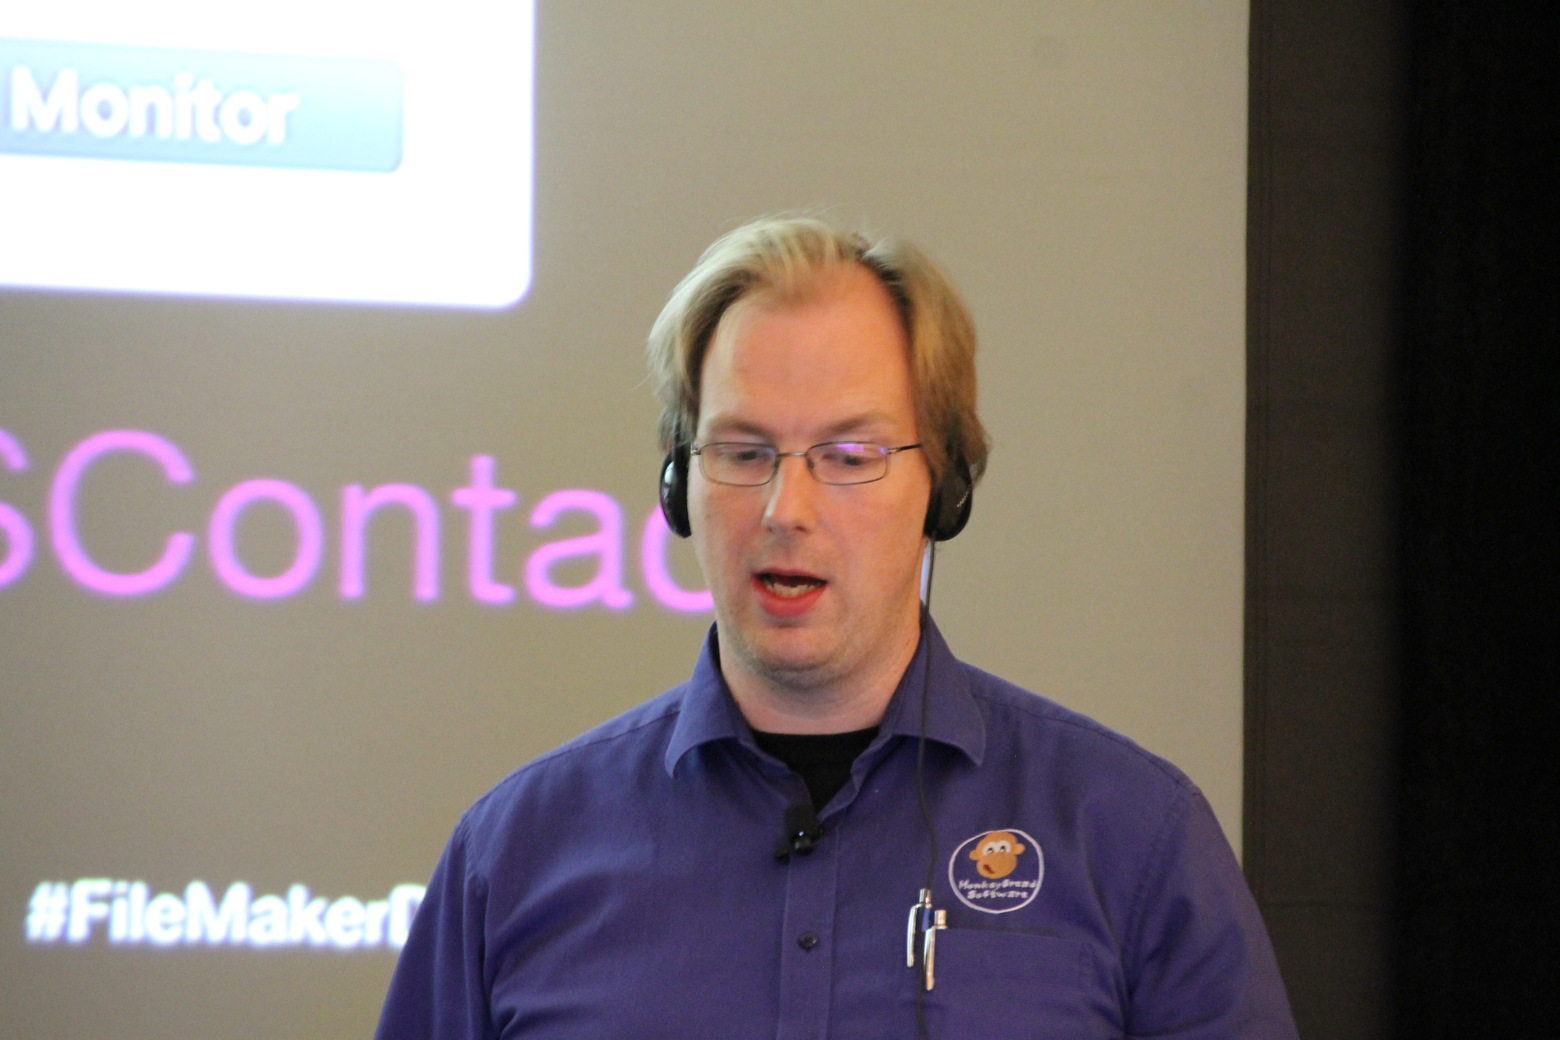 MBS Blog - Slides and Pictures from my presentation